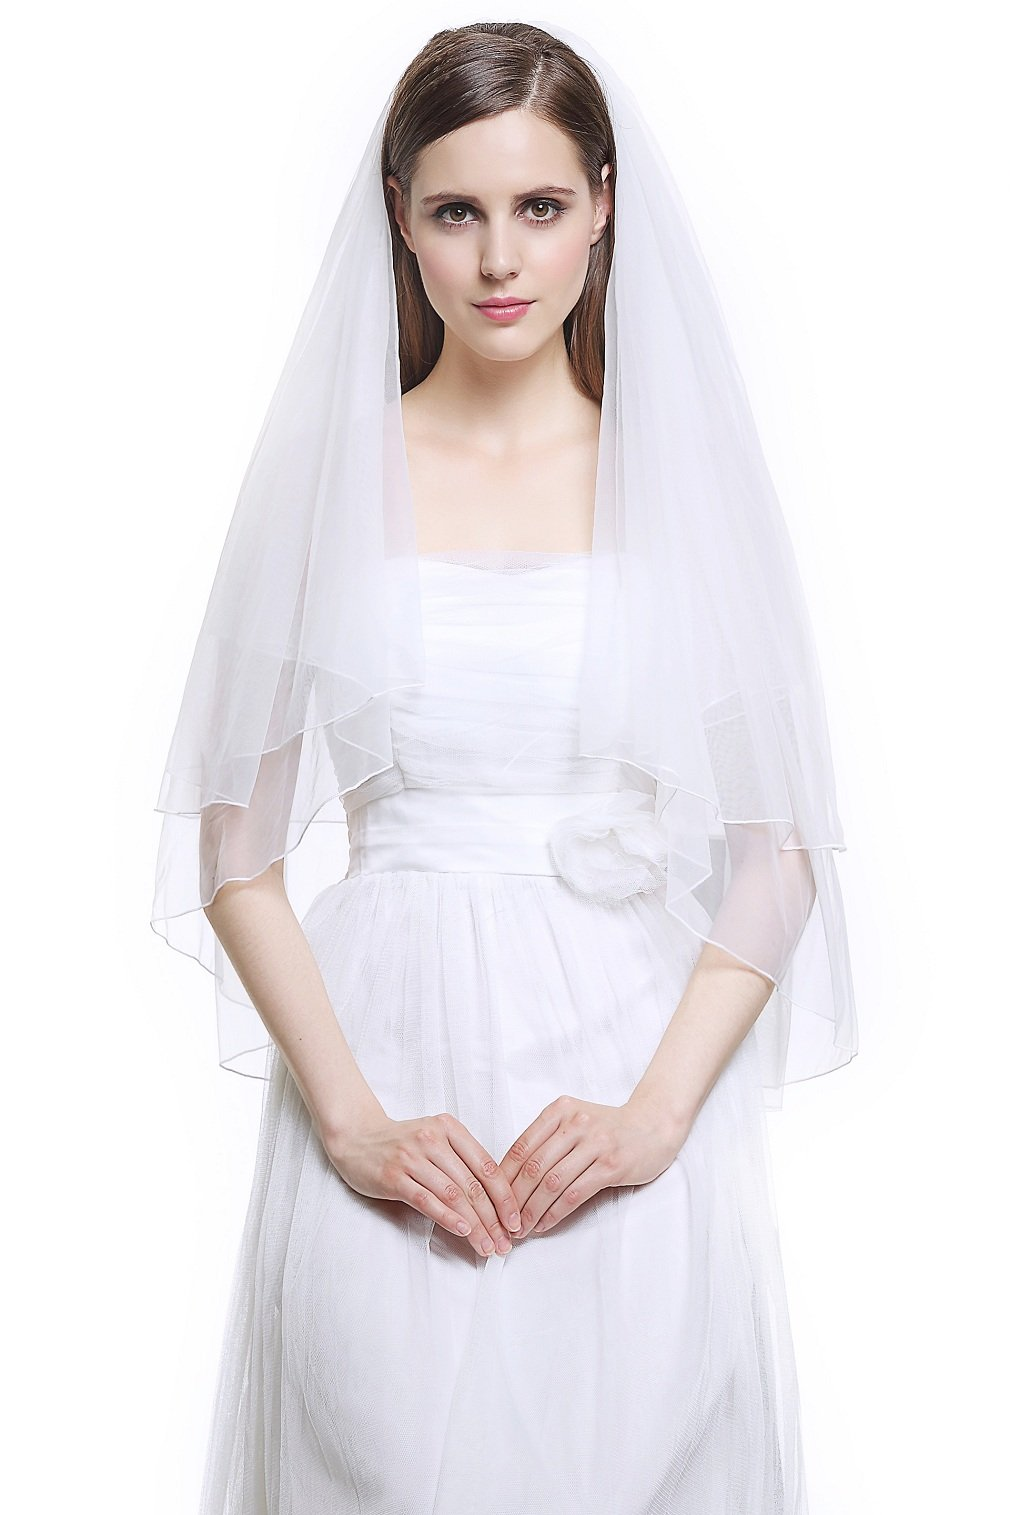 Wedding Bridal Veil with Comb 2 Tier Cut Edge Fingertip Length 35'' Ivory by BEAUTELICATE